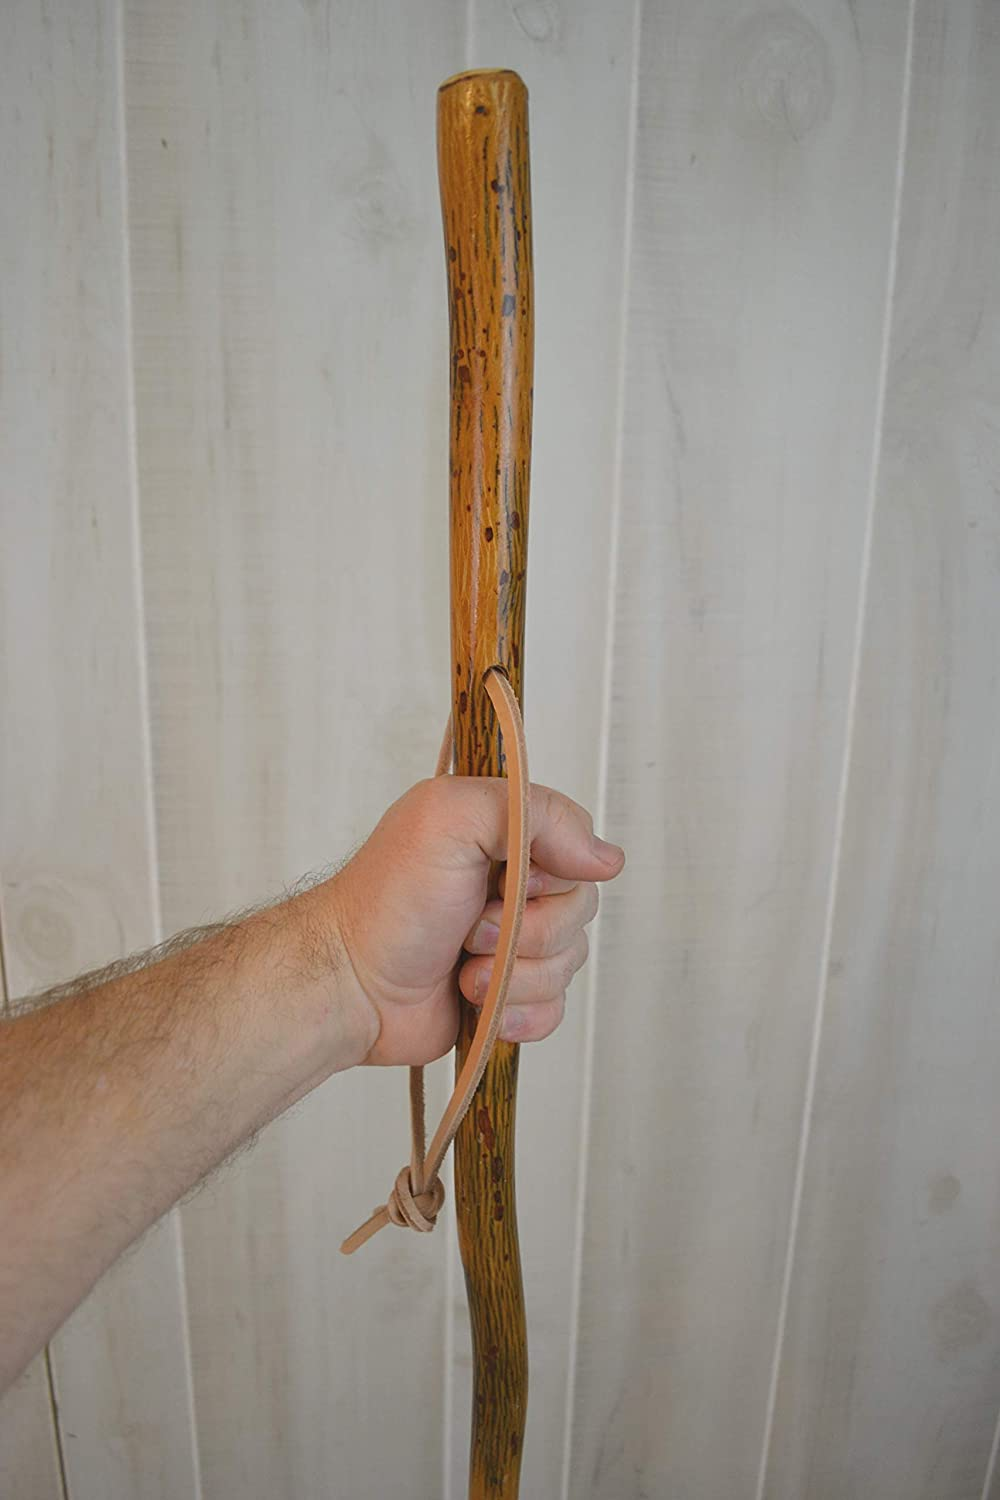 Walking Stick Up to 60 Curvy Walking Sticks Customize Free Form Hickory Strong